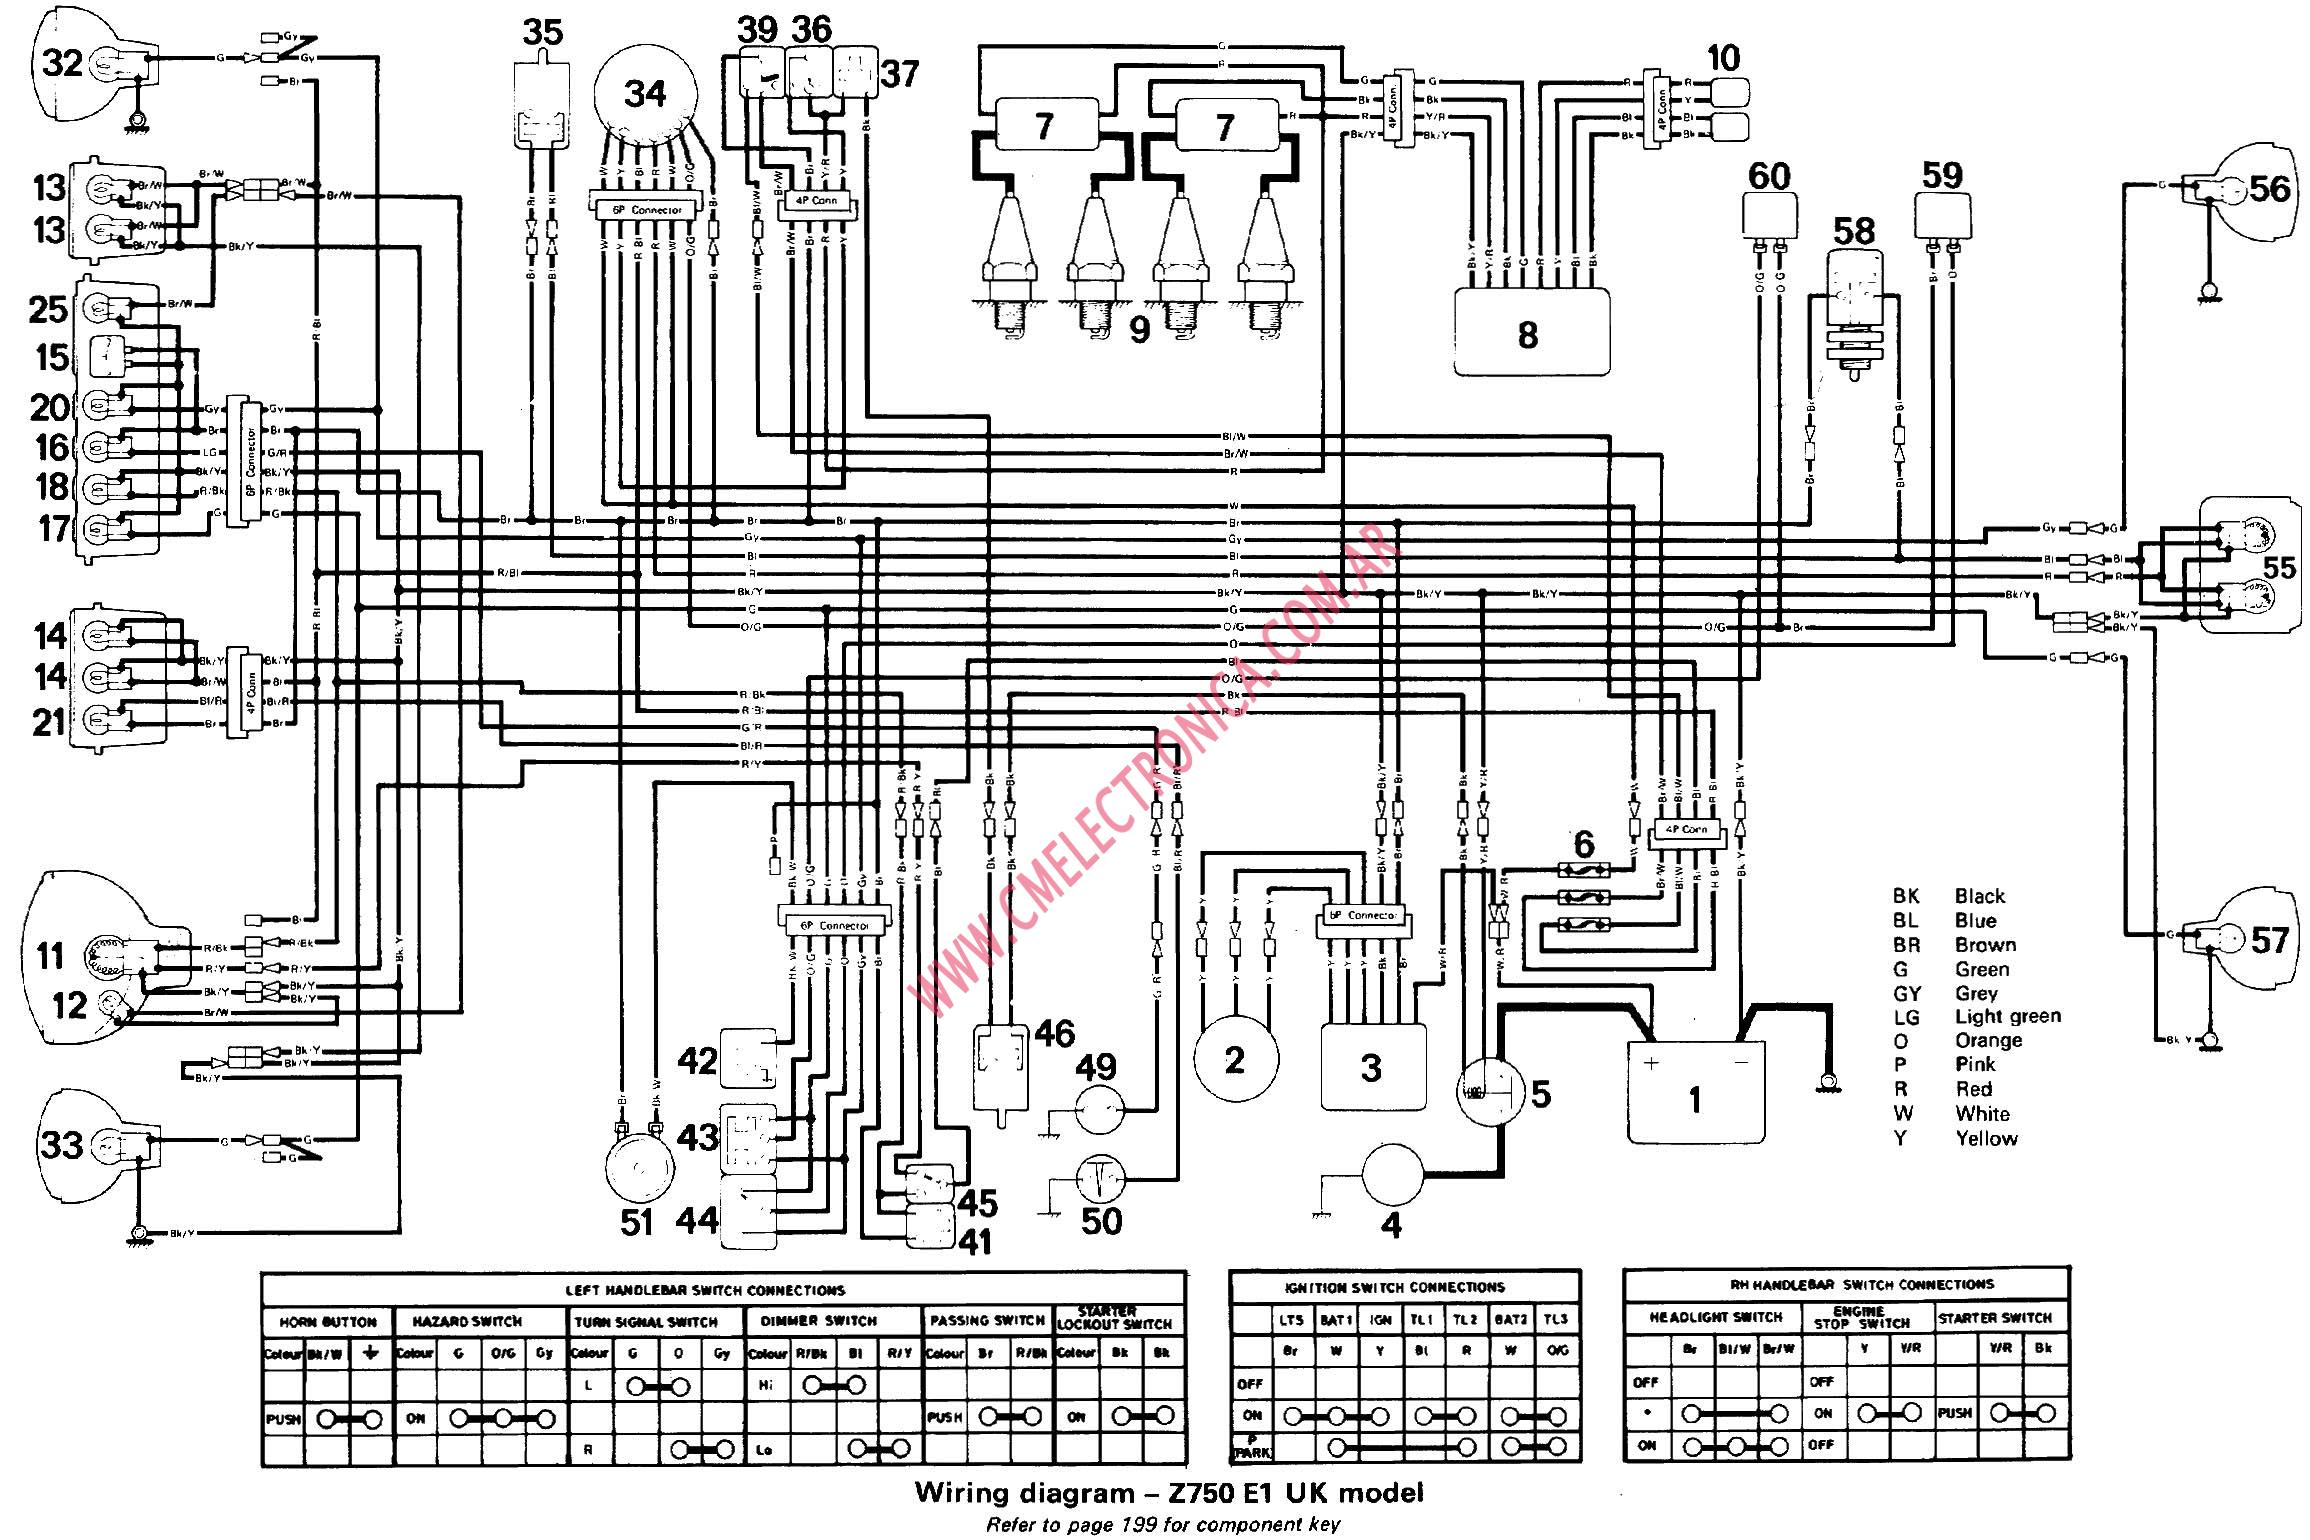 DIAGRAM] 1987 Yfm350ert Wiring Diagram FULL Version HD Quality Wiring  Diagram - PDFBOOKS-VALE.JIMMY2K.ITpdfbooks-vale.jimmy2k.it